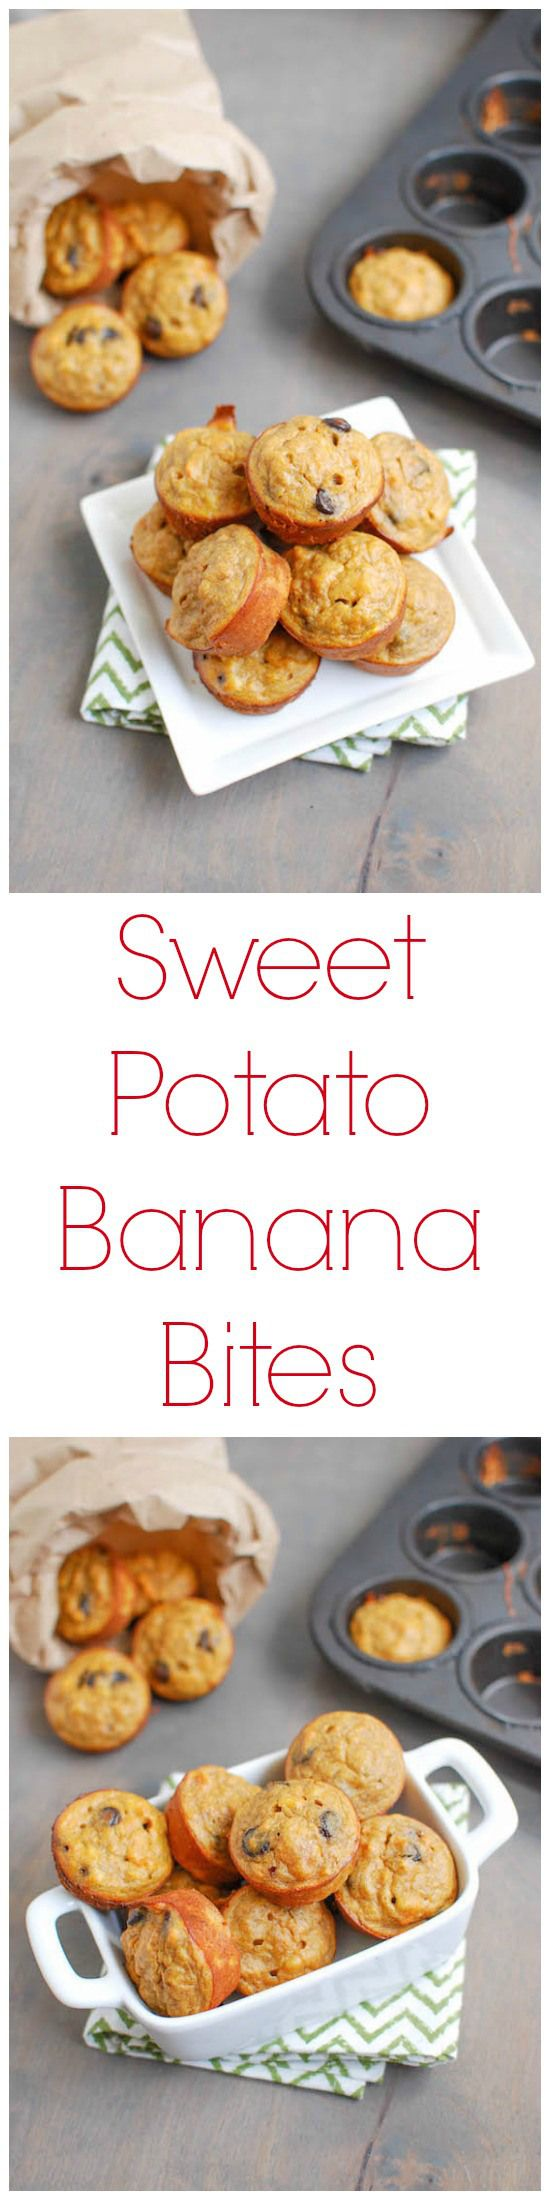 Sweet Potato Banana Bites. Ingredients: sweet potato, banana, nut butter, egg, cinnamon